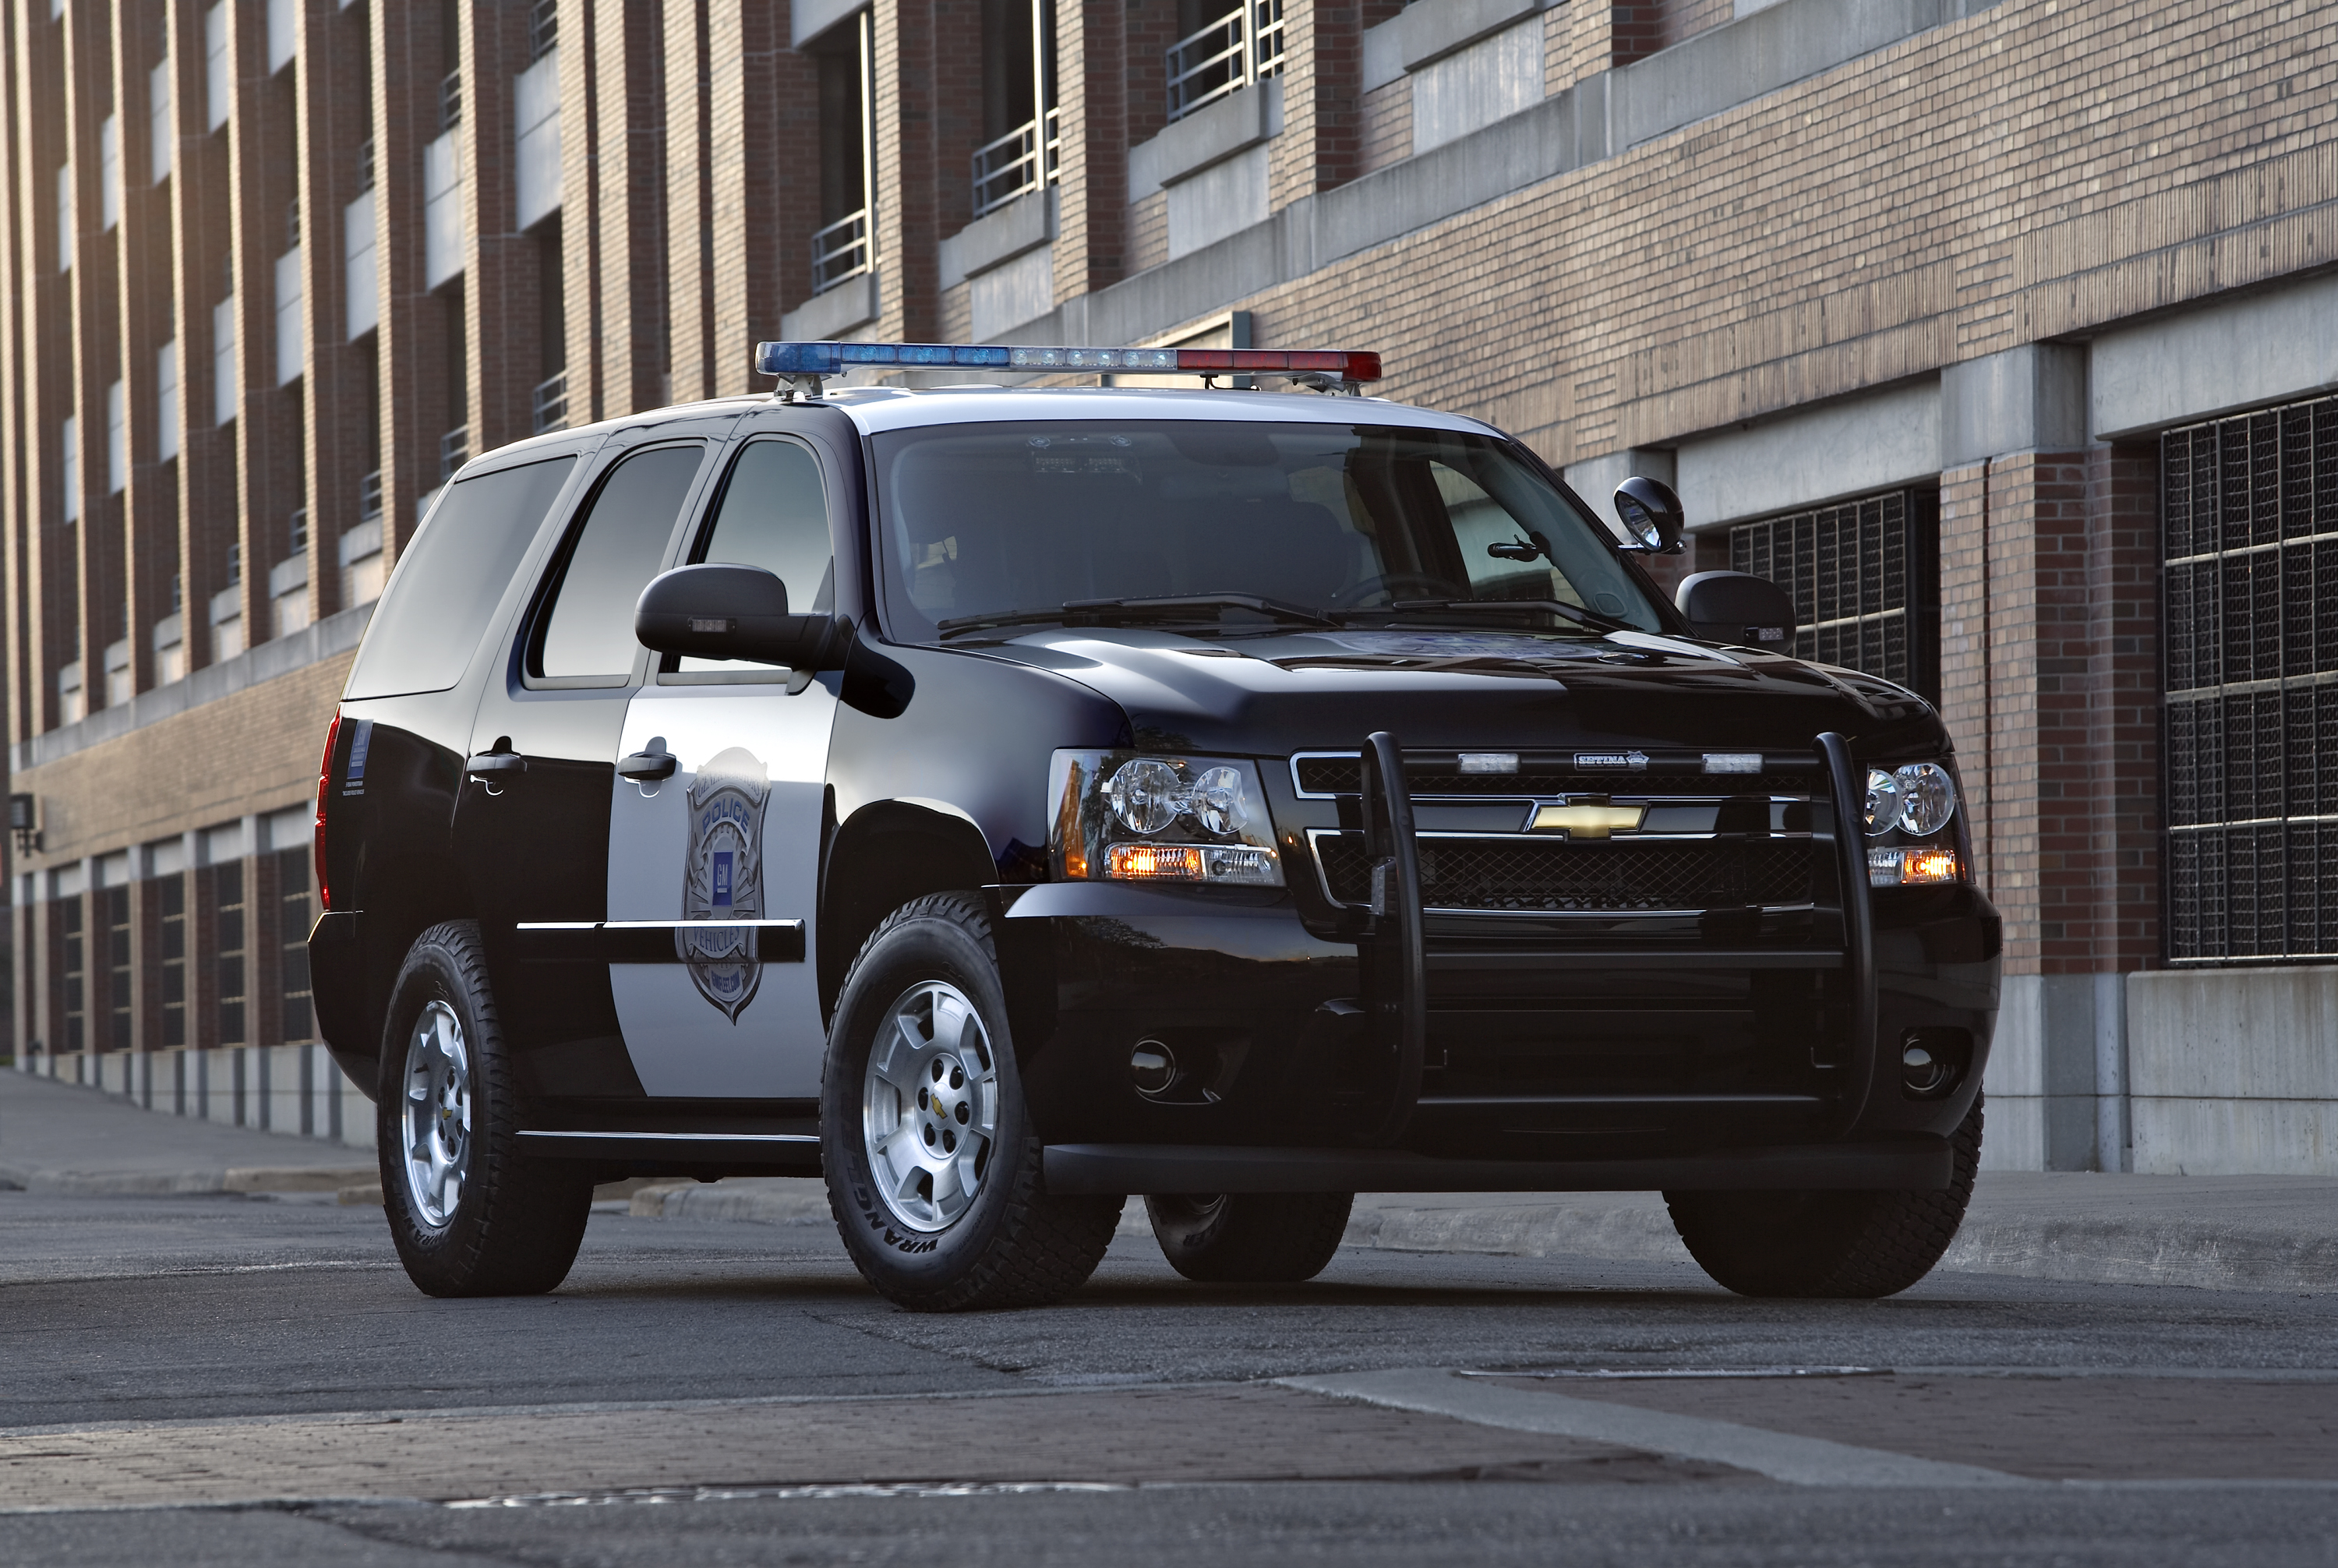 GM Recalls 50,000 Police SUV's